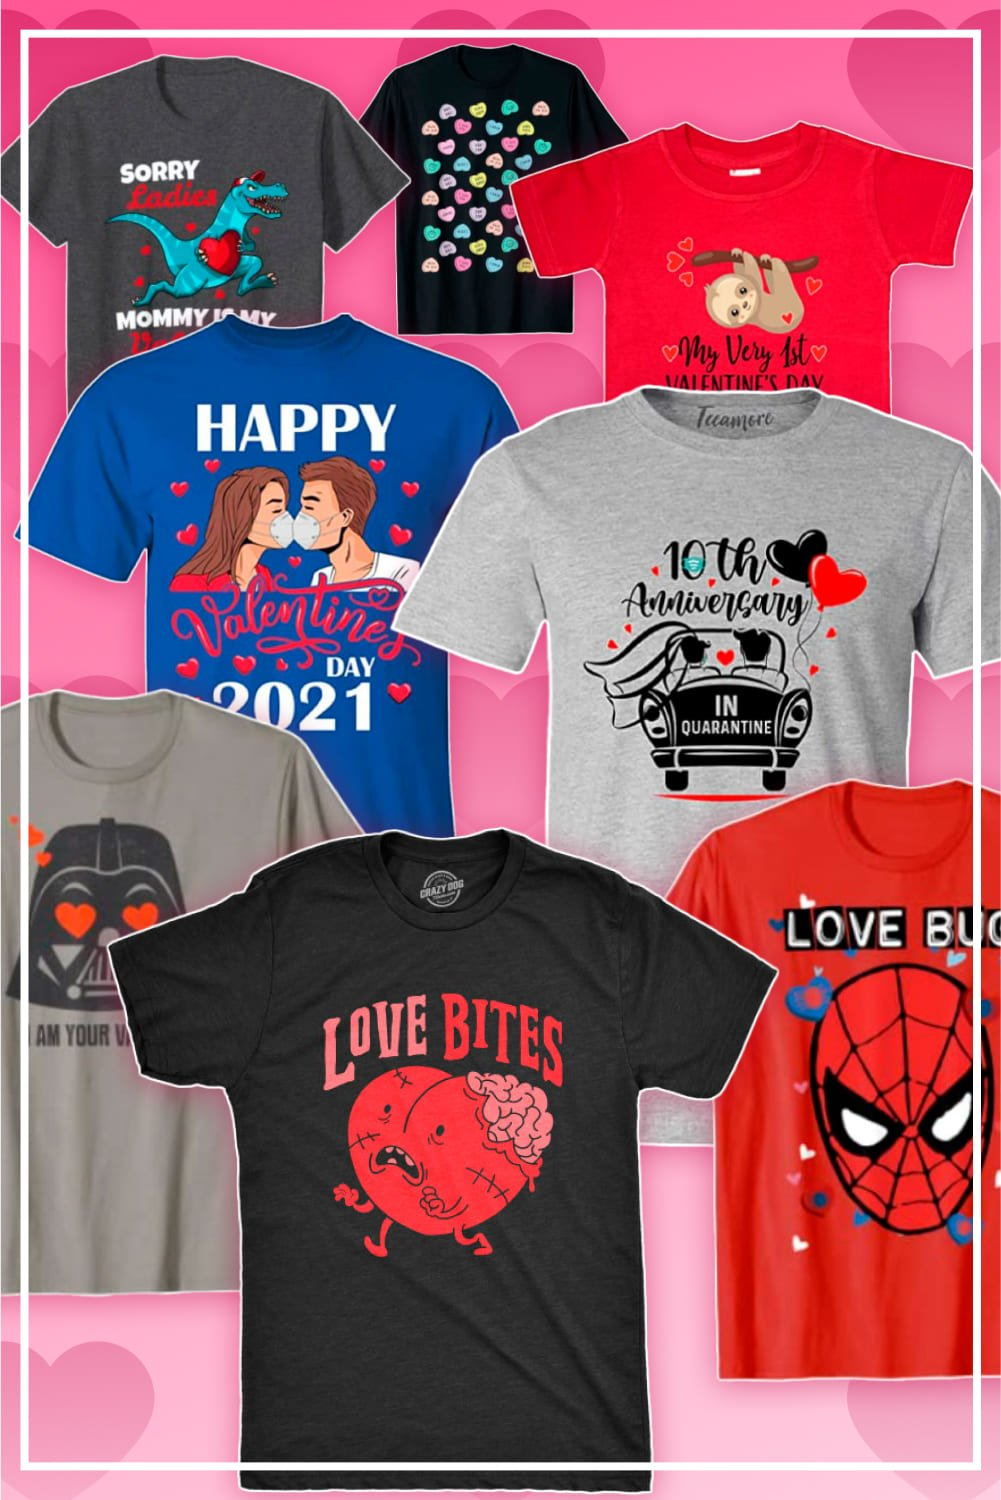 Valentines Day T-Shirts. Pinterest Image.